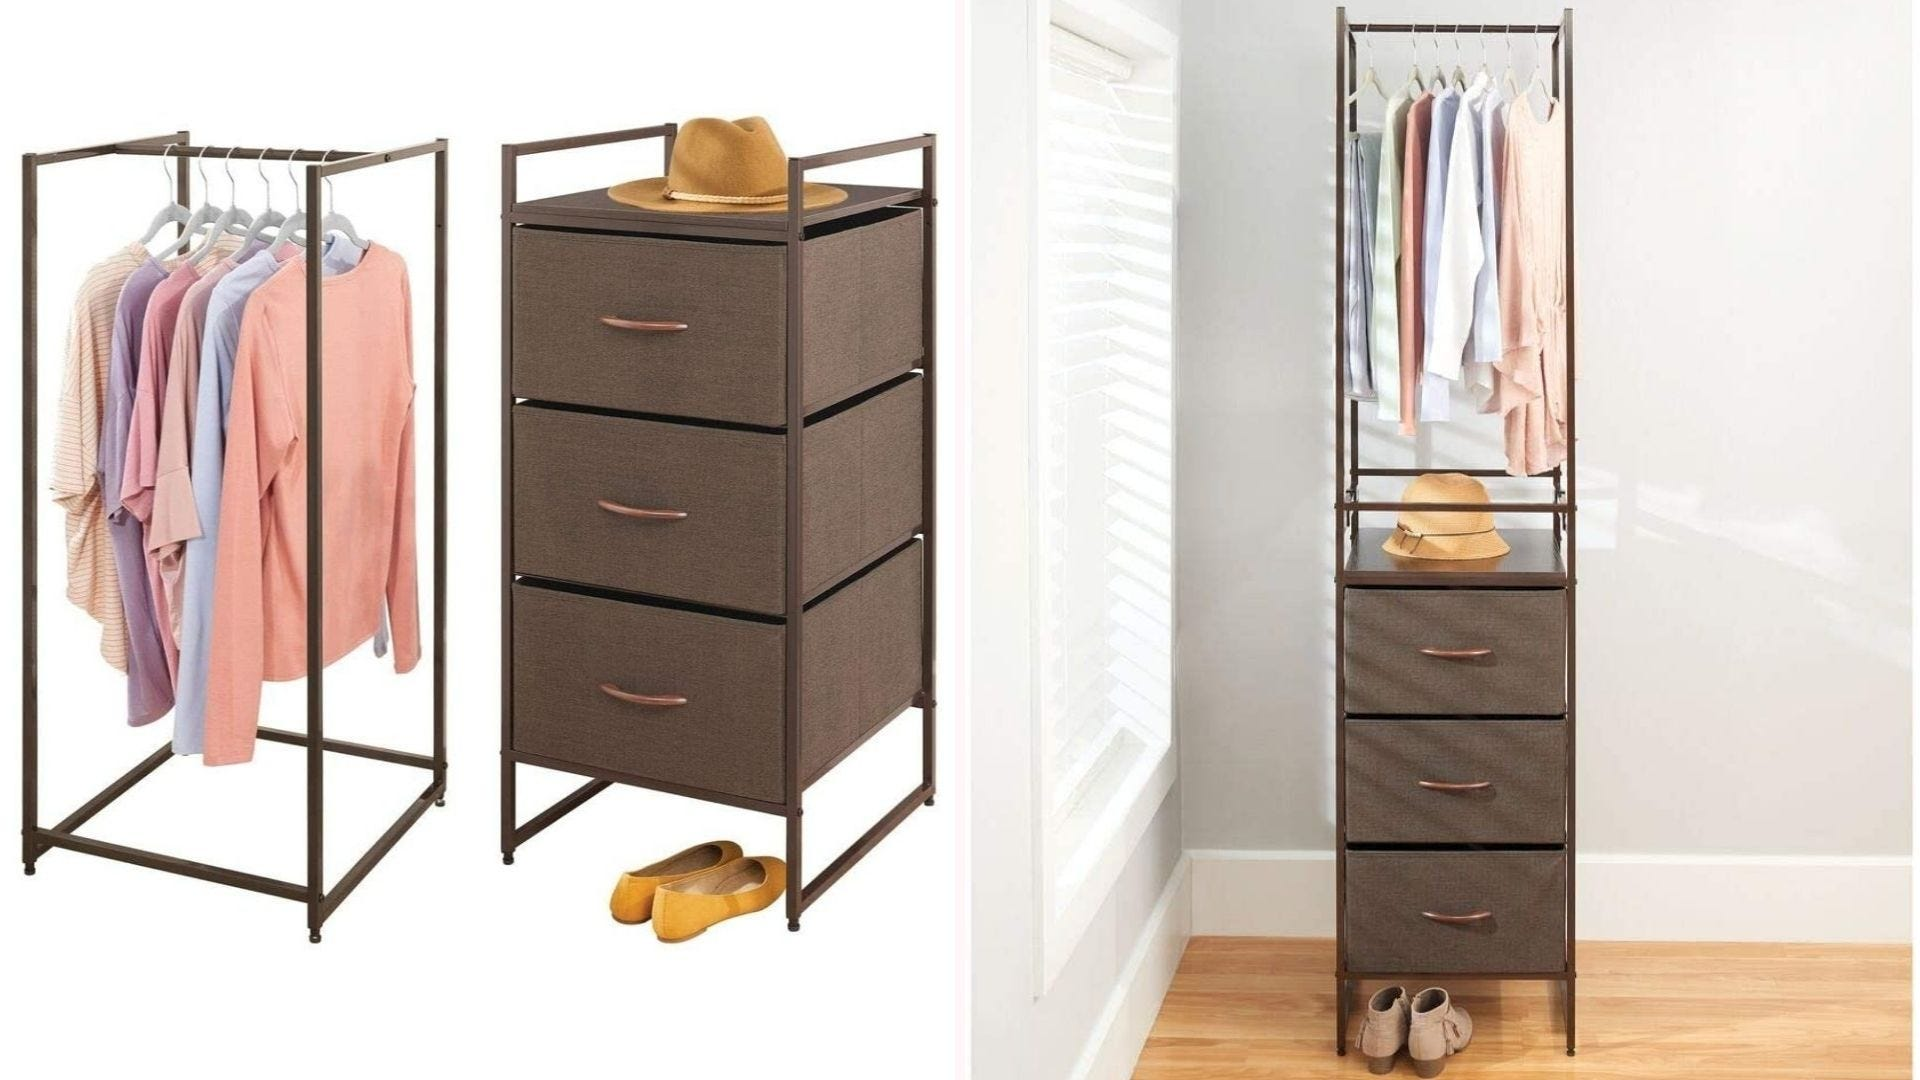 Images of 2-piece stackable clothing rack.